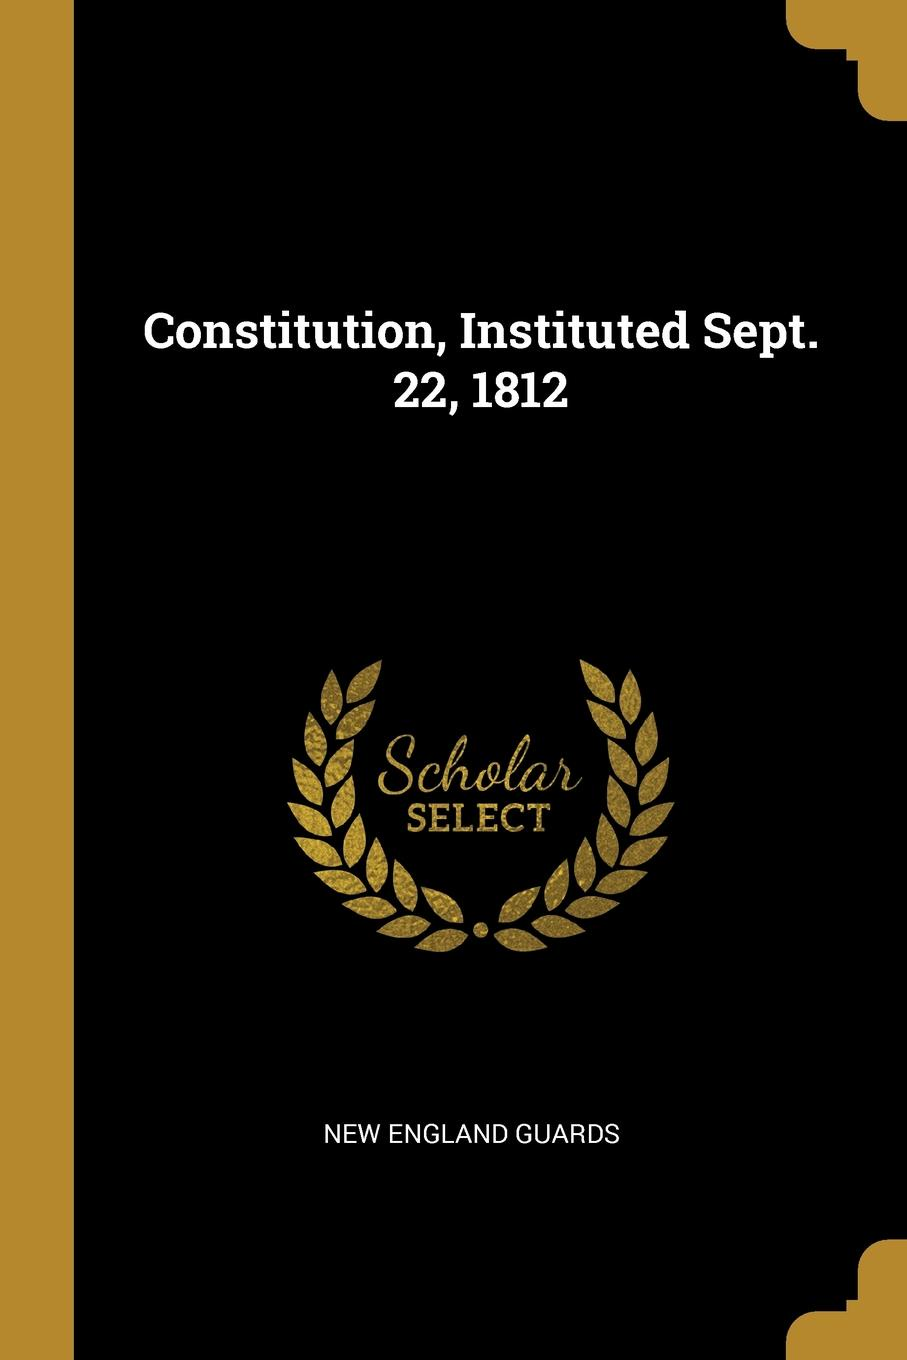 New England Guards. Constitution, Instituted Sept. 22, 1812